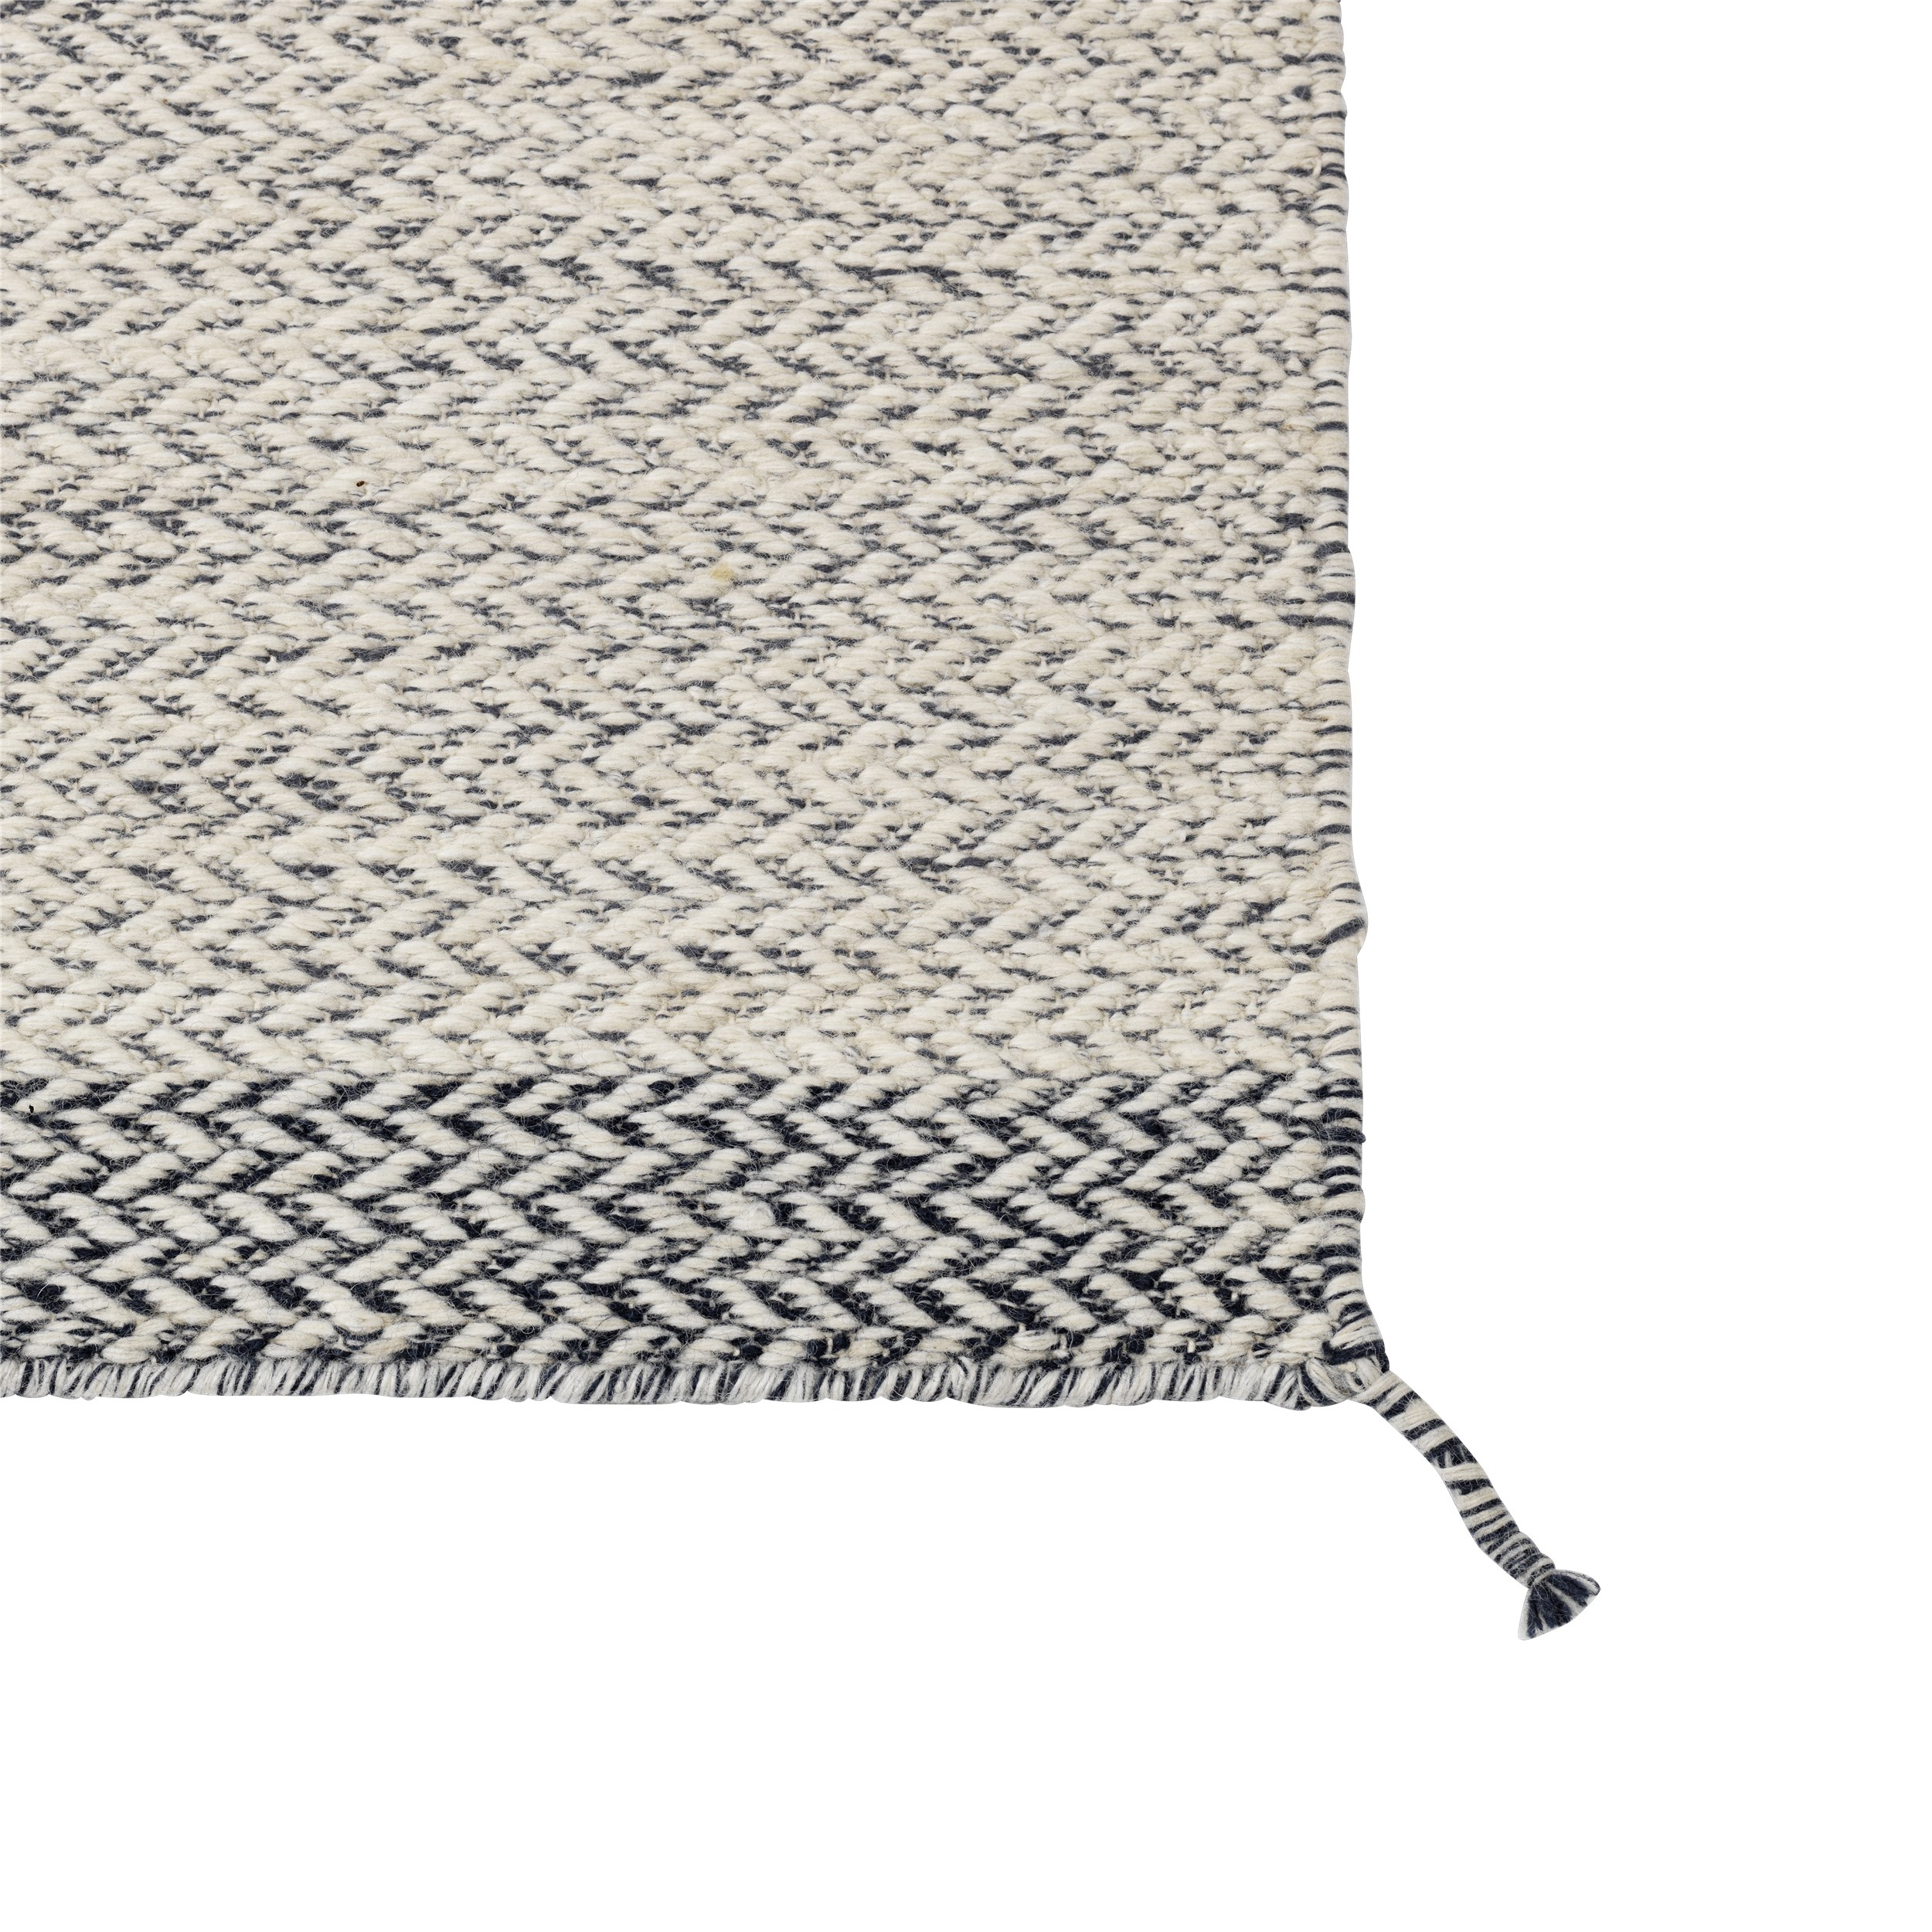 Ply rug 170 x 240 off-white